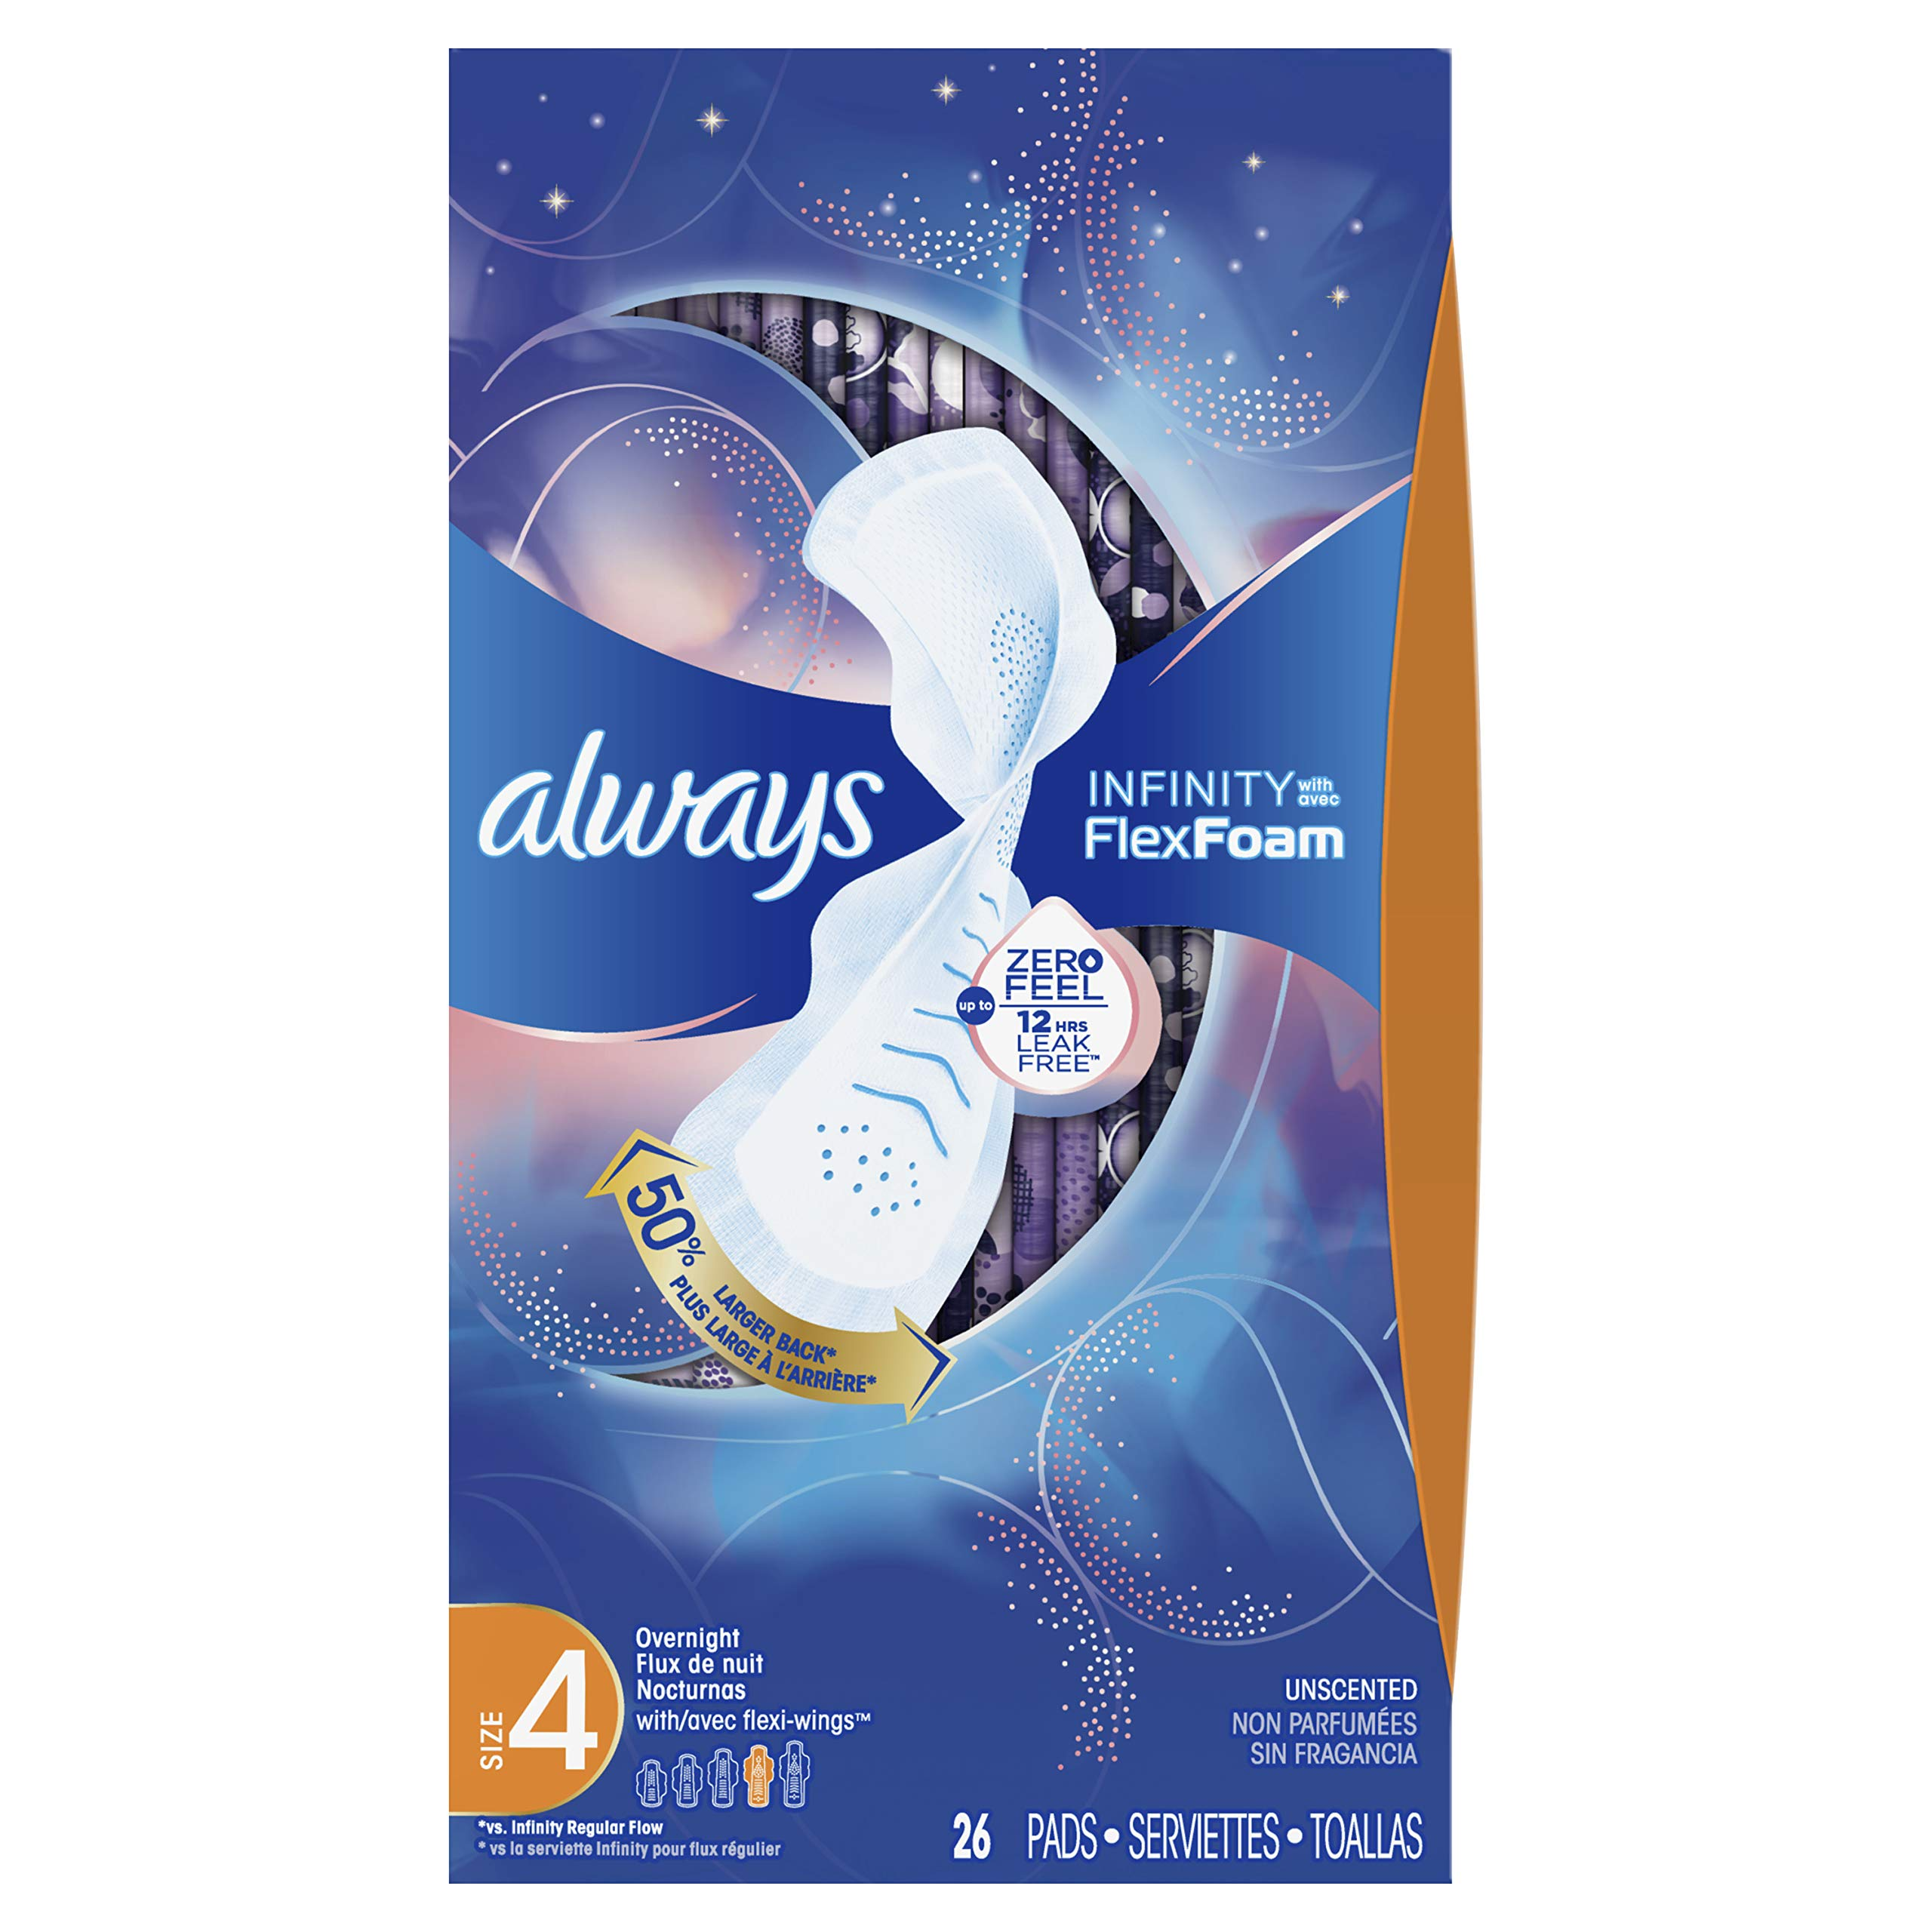 Always Infinity Feminine Pads for Women, Size 4, Overnight Absorbency, with Wings, Unscented, 26 Count,Pack of 3 (Packaging May Vary) by Always